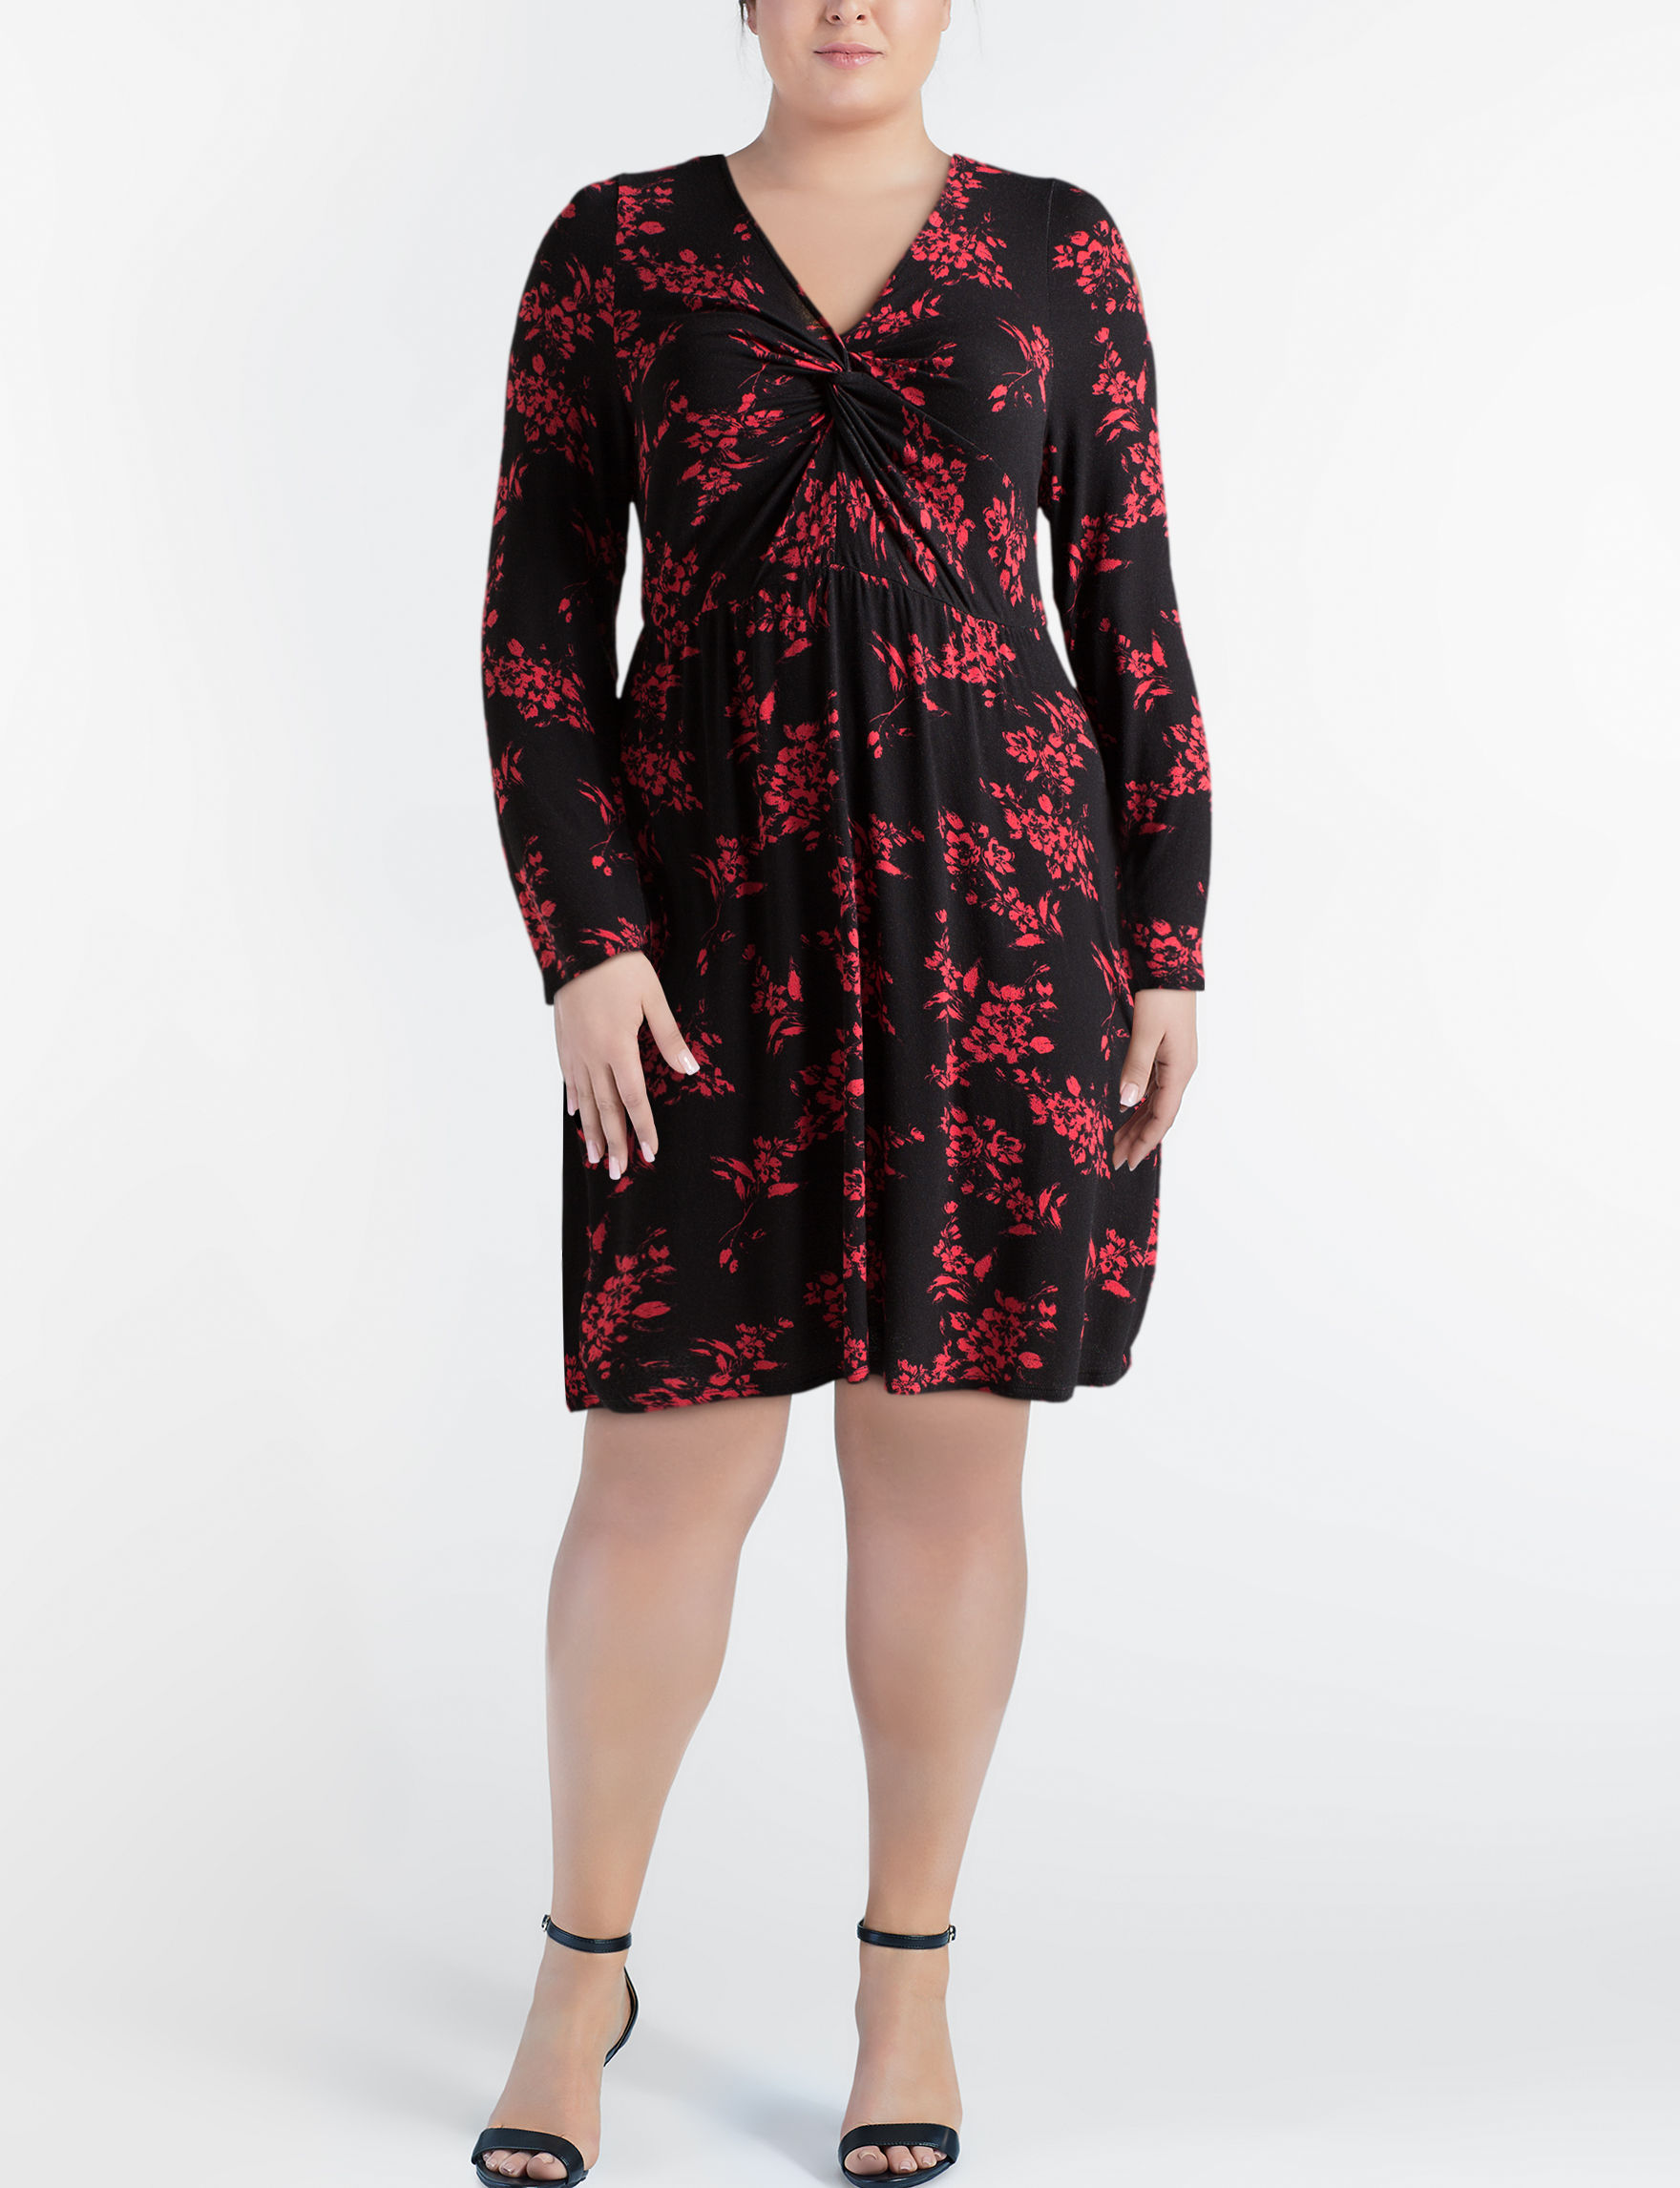 Liberty Love Black Everyday & Casual Shift Dresses